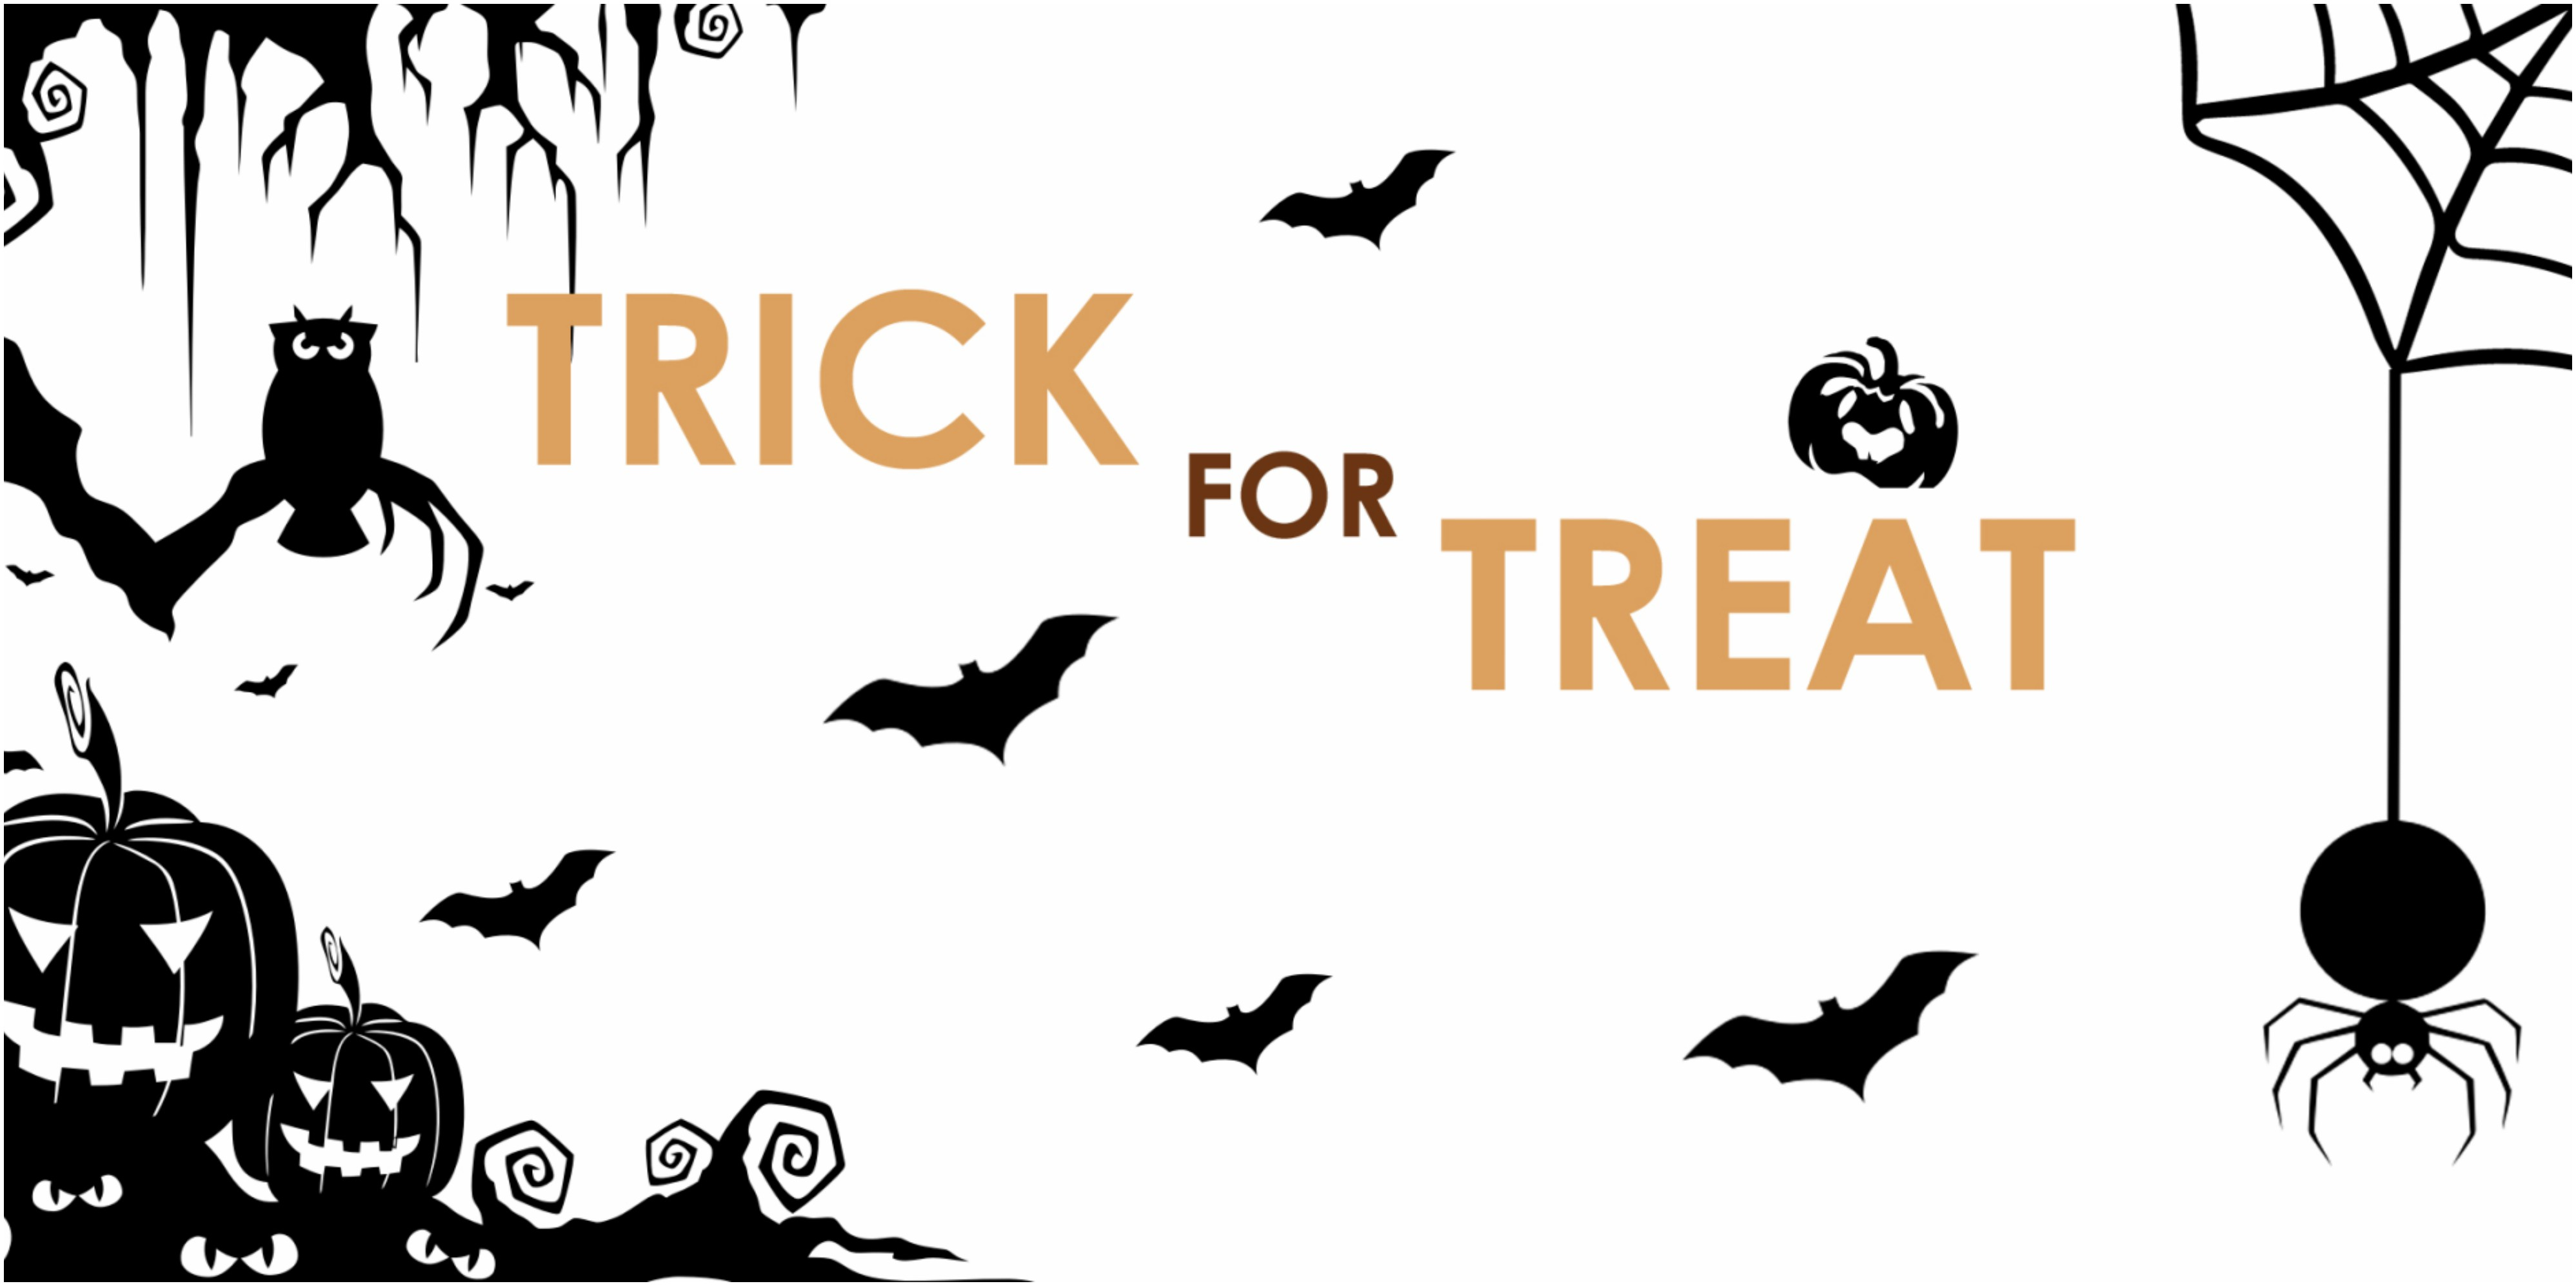 Halloween Offer: Trick for Treat!